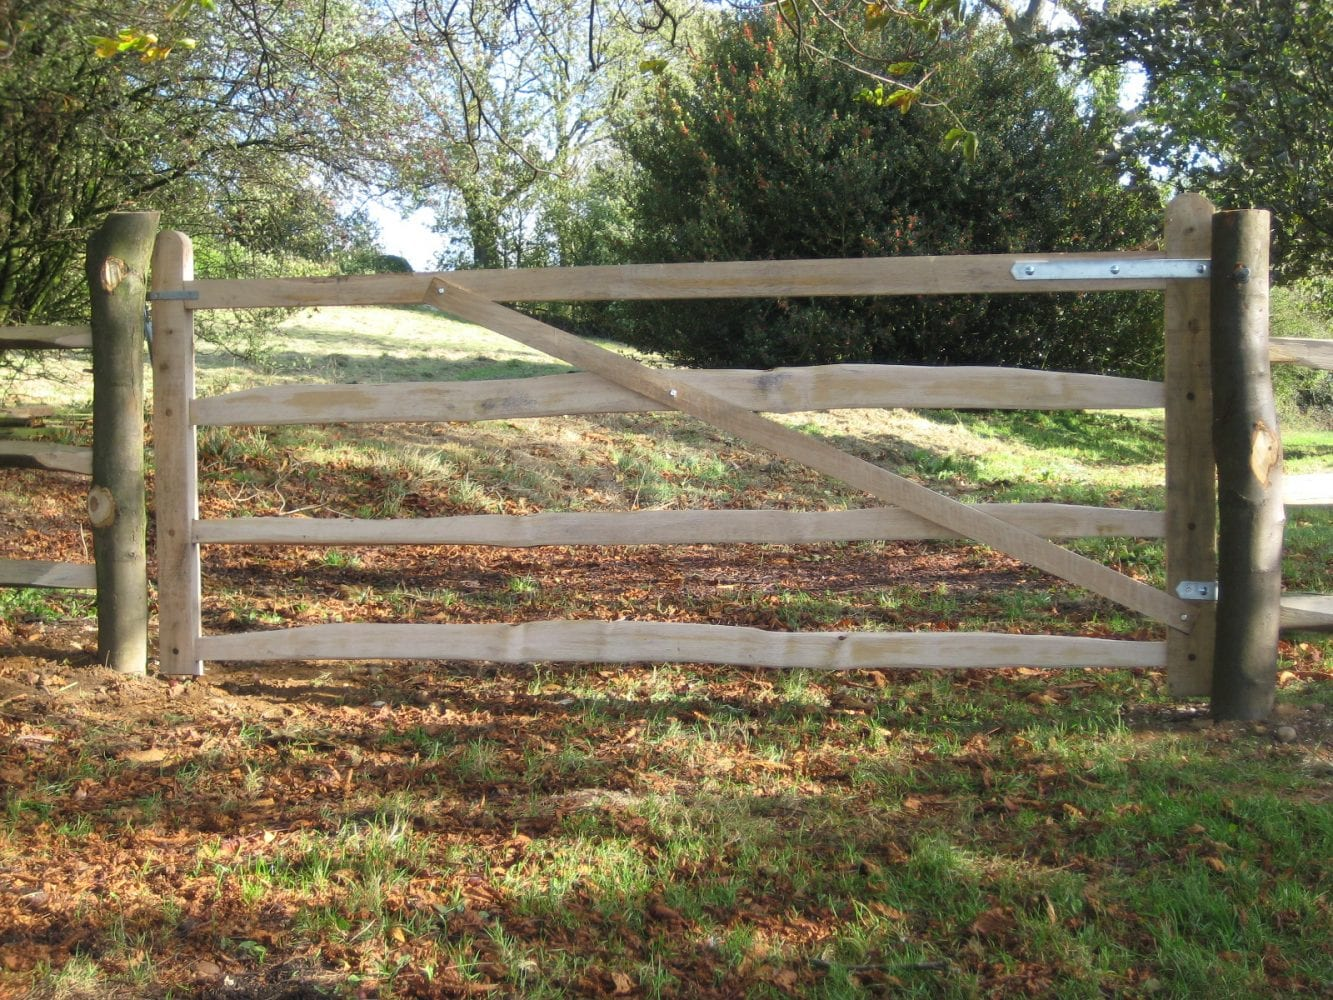 All of our gates are made of oak or chestnut with mortice and tennon joints, held tight with oak pegs.